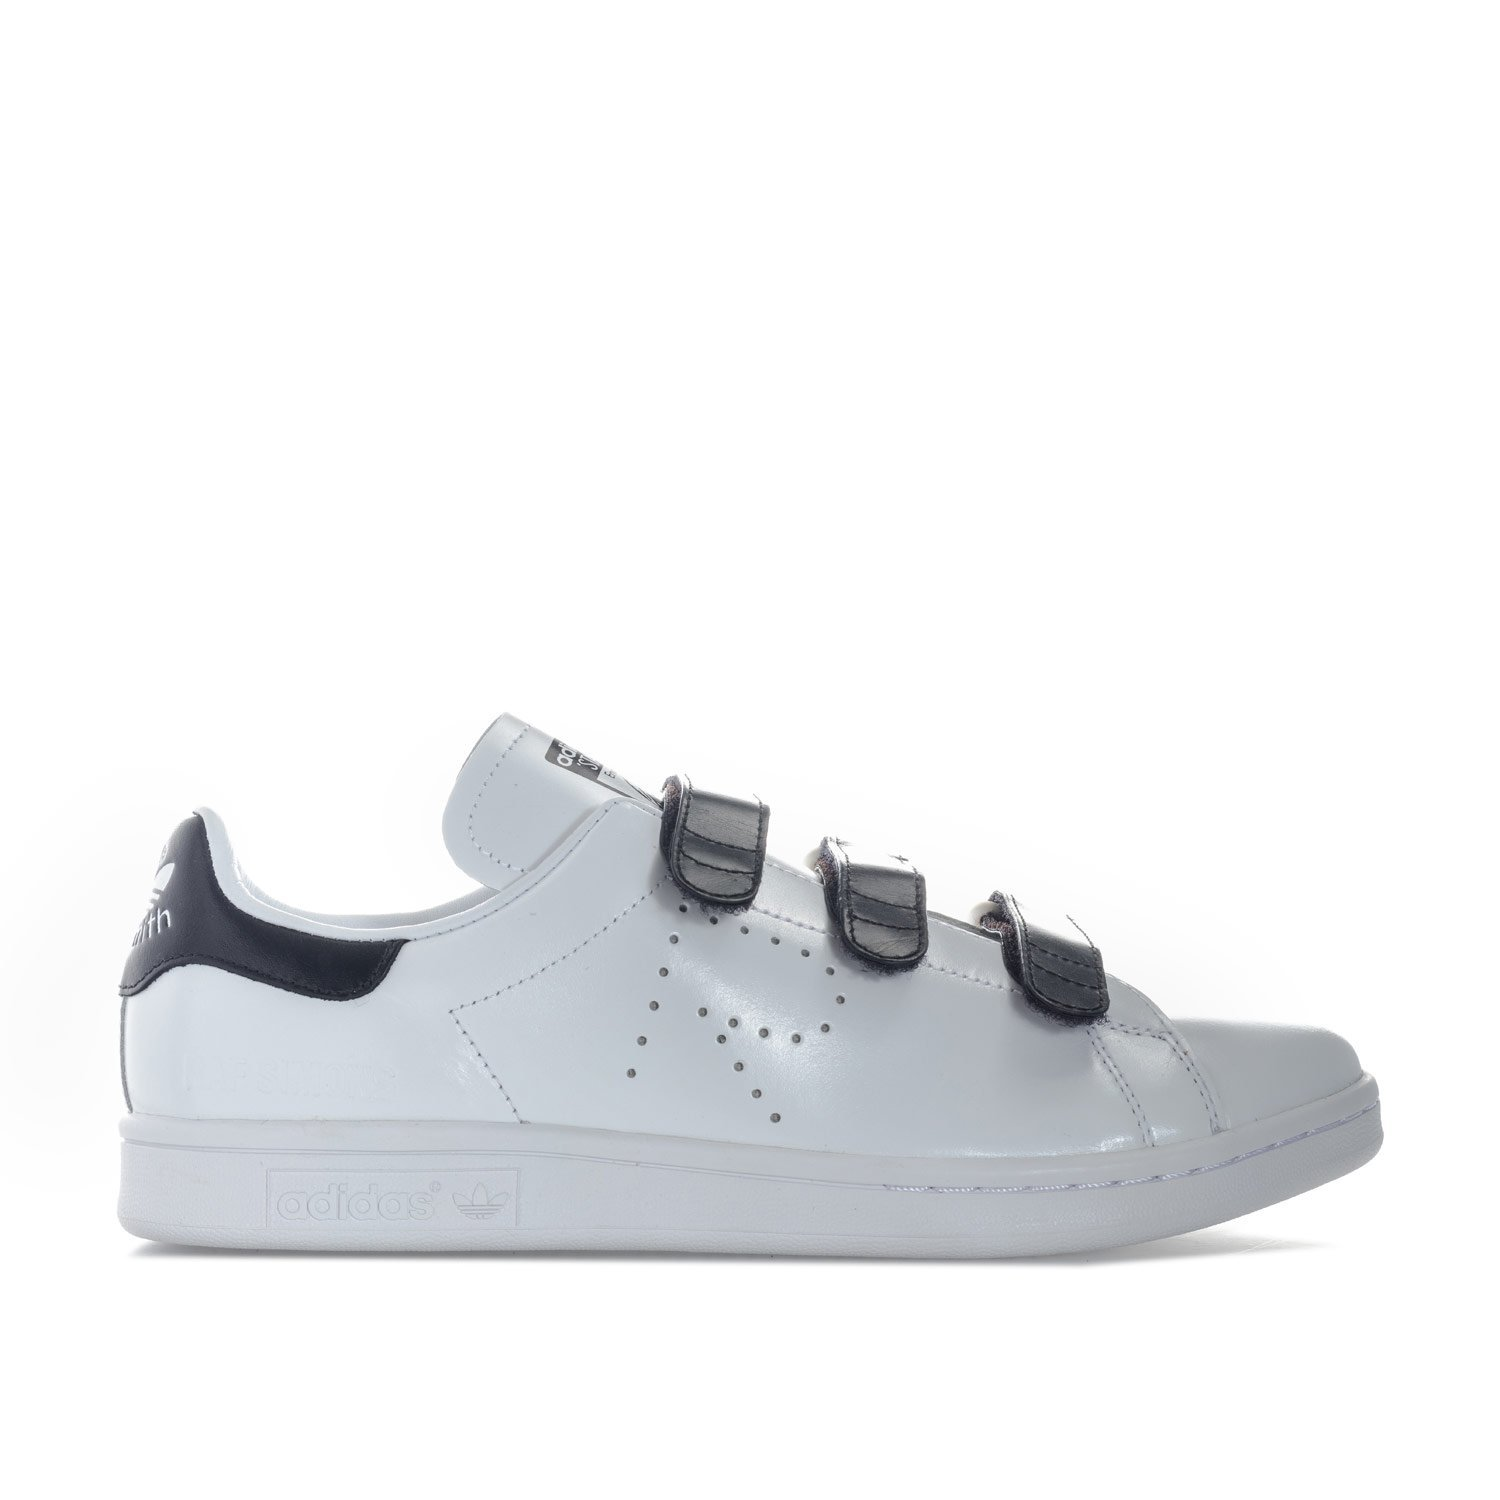 best service d4eff 21fde Get Quotations · Raf Simons Men s Stan Smith Comfort Trainers UK 6 White